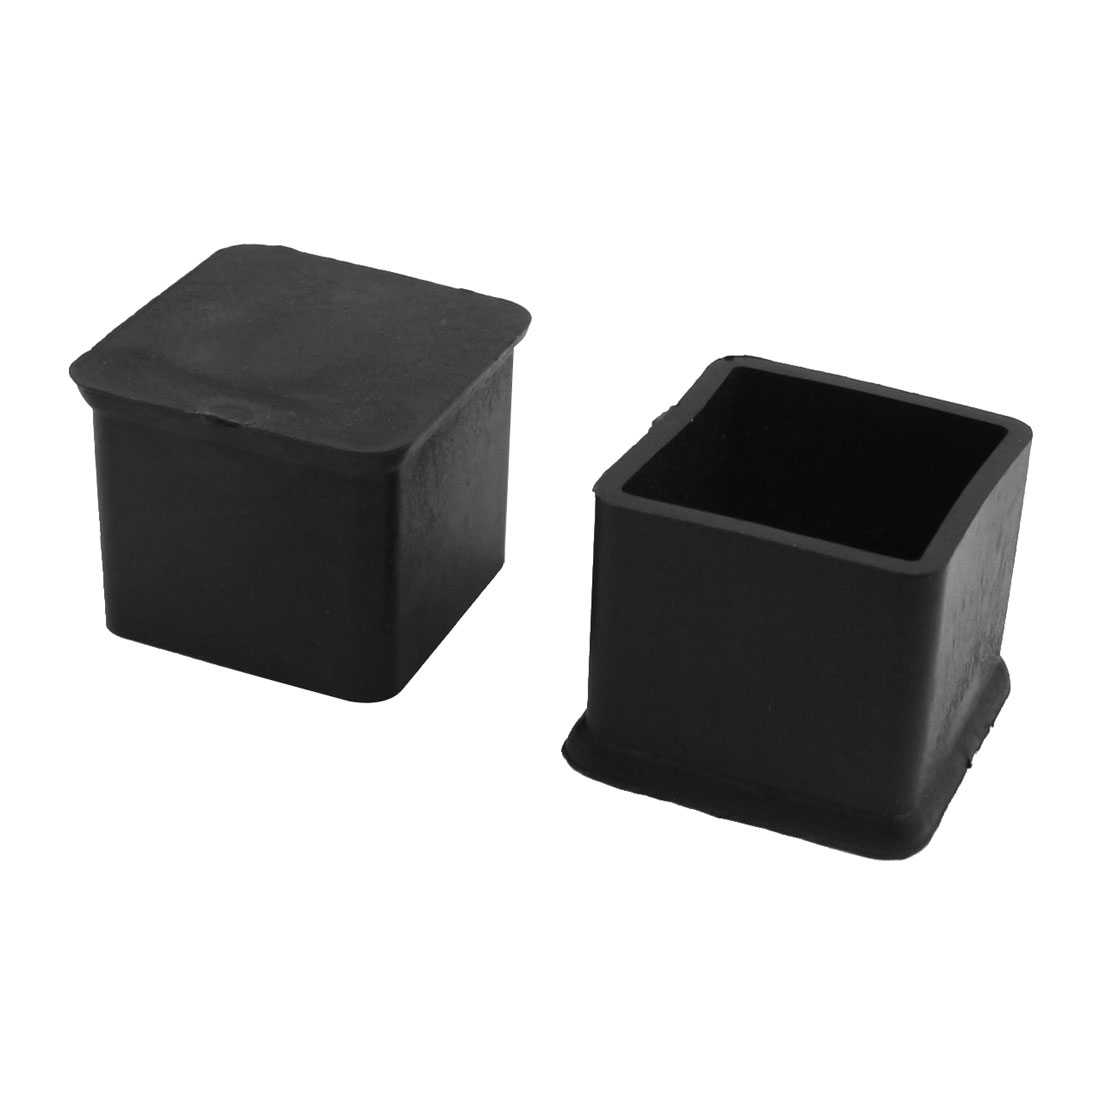 25mmx25mm Square Furniture Leg Protection Rubber Chair Feet Ferrules Black 2Pcs